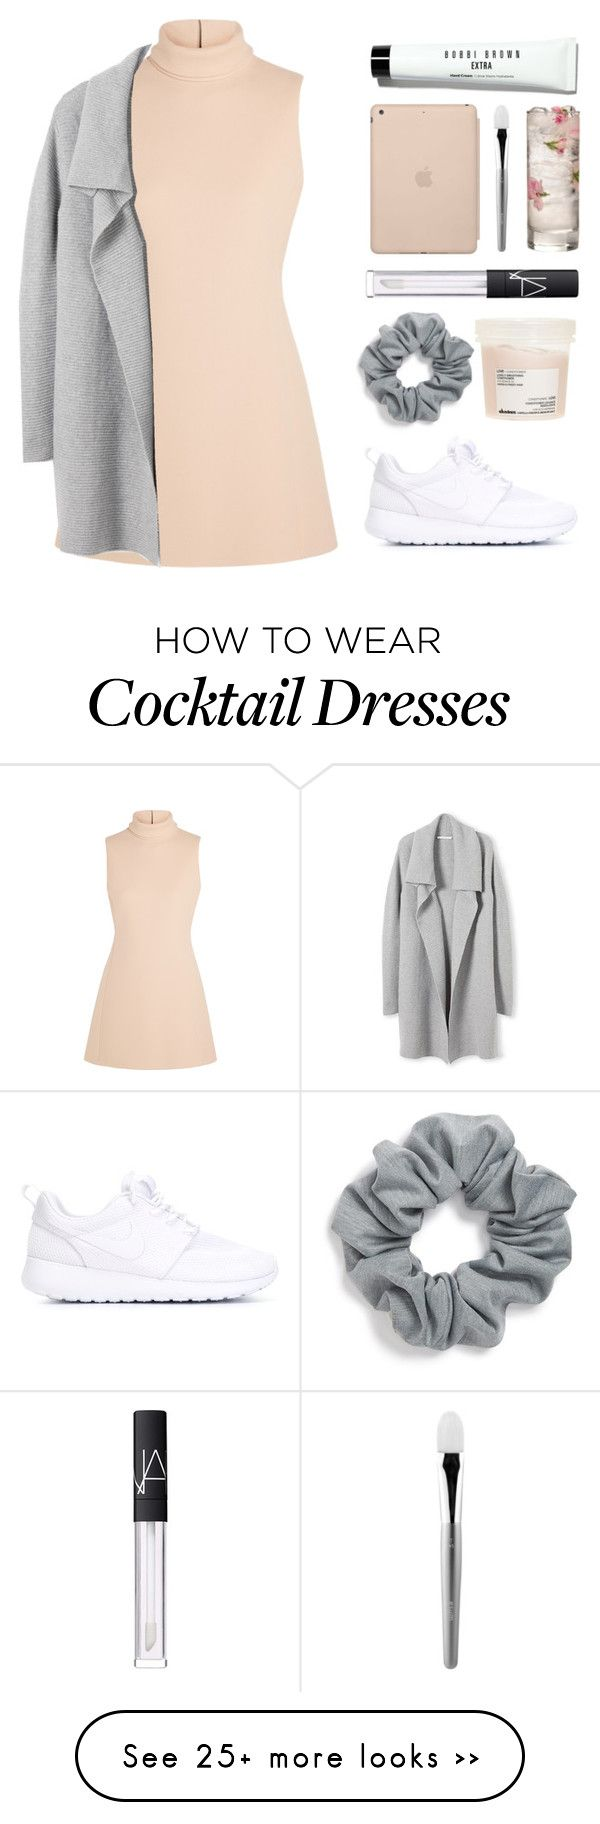 """ready"" by x-v-i-i-i on Polyvore featuring Calvin Klein Collection, Natasha Couture, NIKE, Davines, NARS Cosmetics, Black Apple, esum and Bobbi Brown Cosmetics"